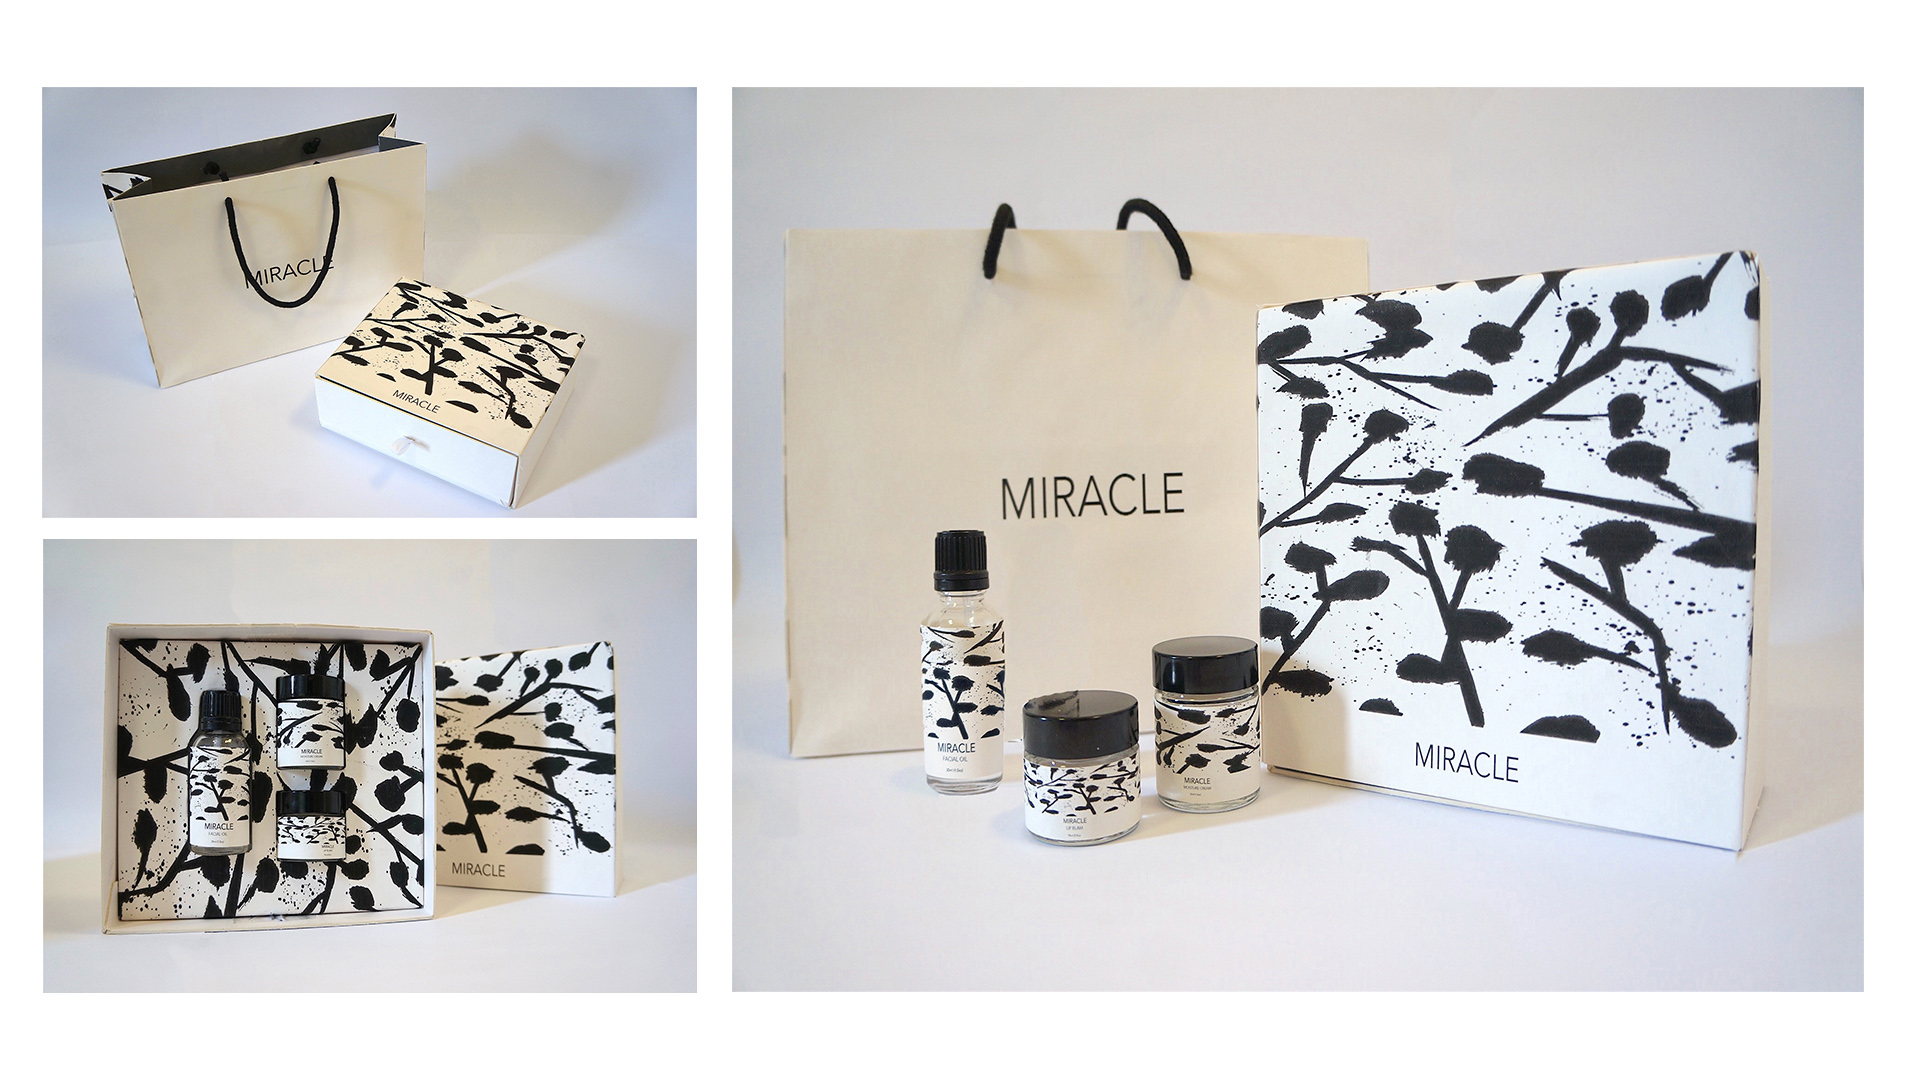 Miracle - Beauty Brand Packaging design